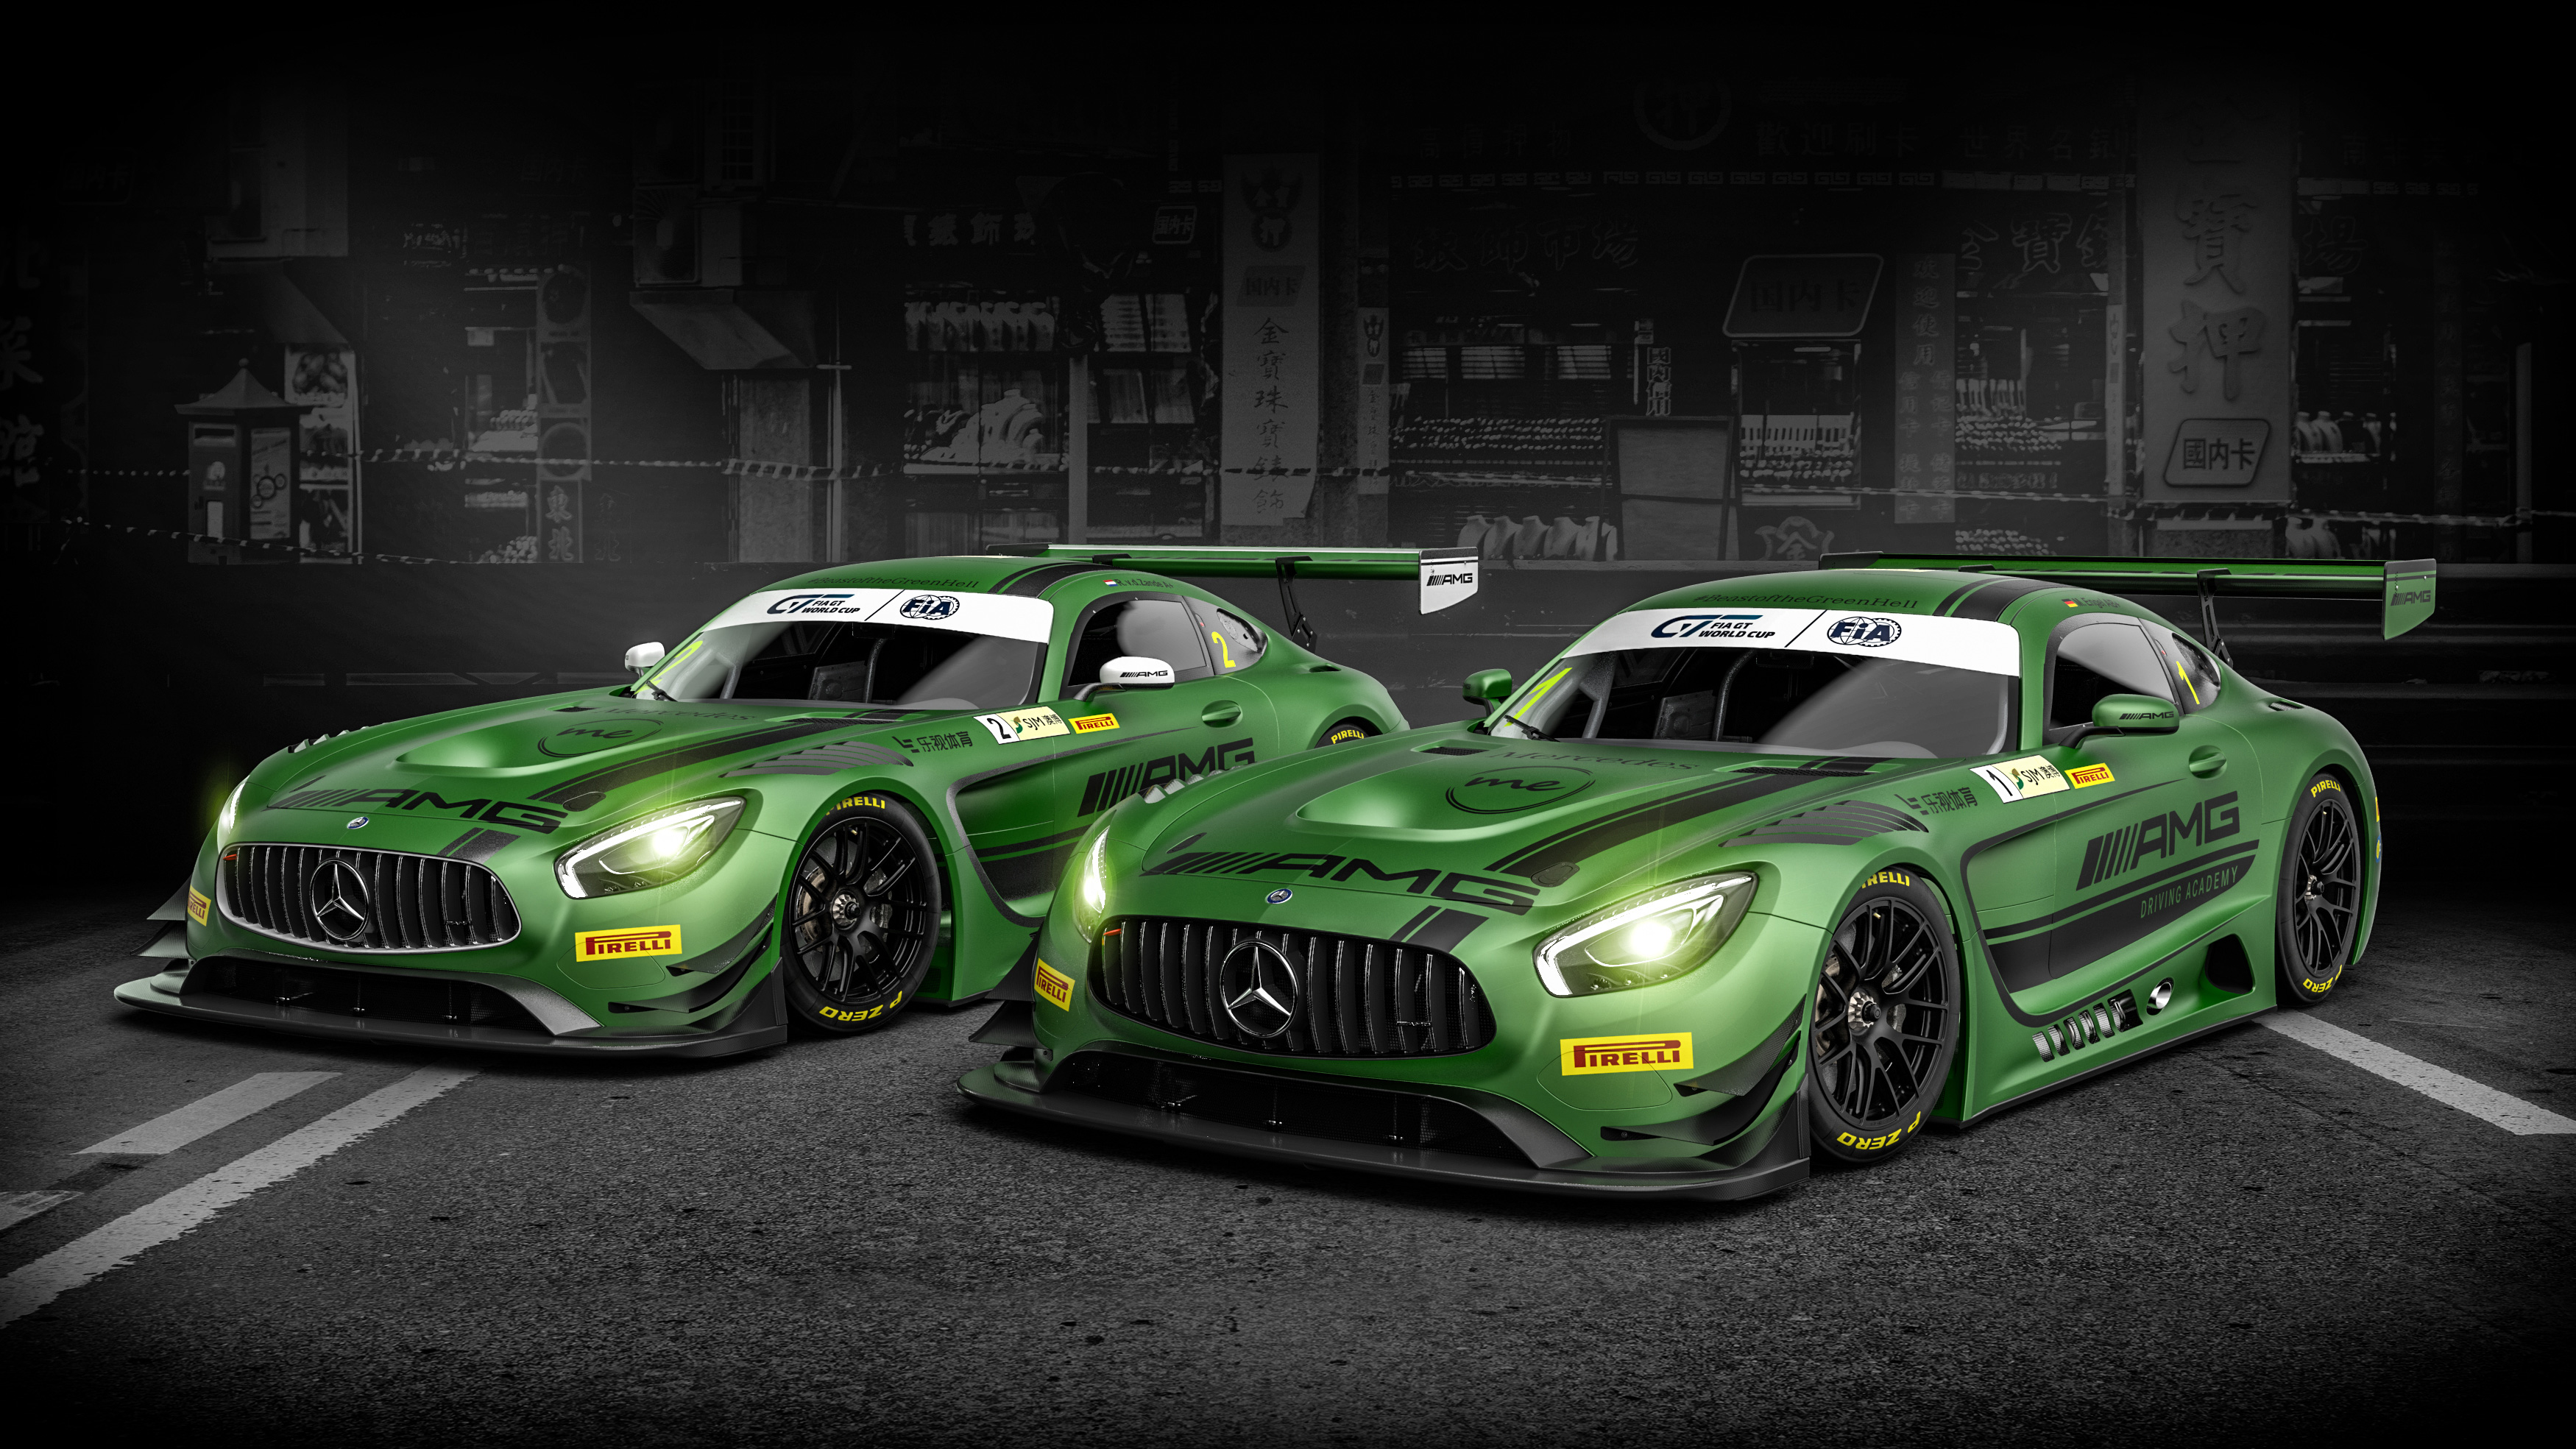 2017 mercedes amg gt3 wallpaper hd car wallpapers id 7149. Black Bedroom Furniture Sets. Home Design Ideas